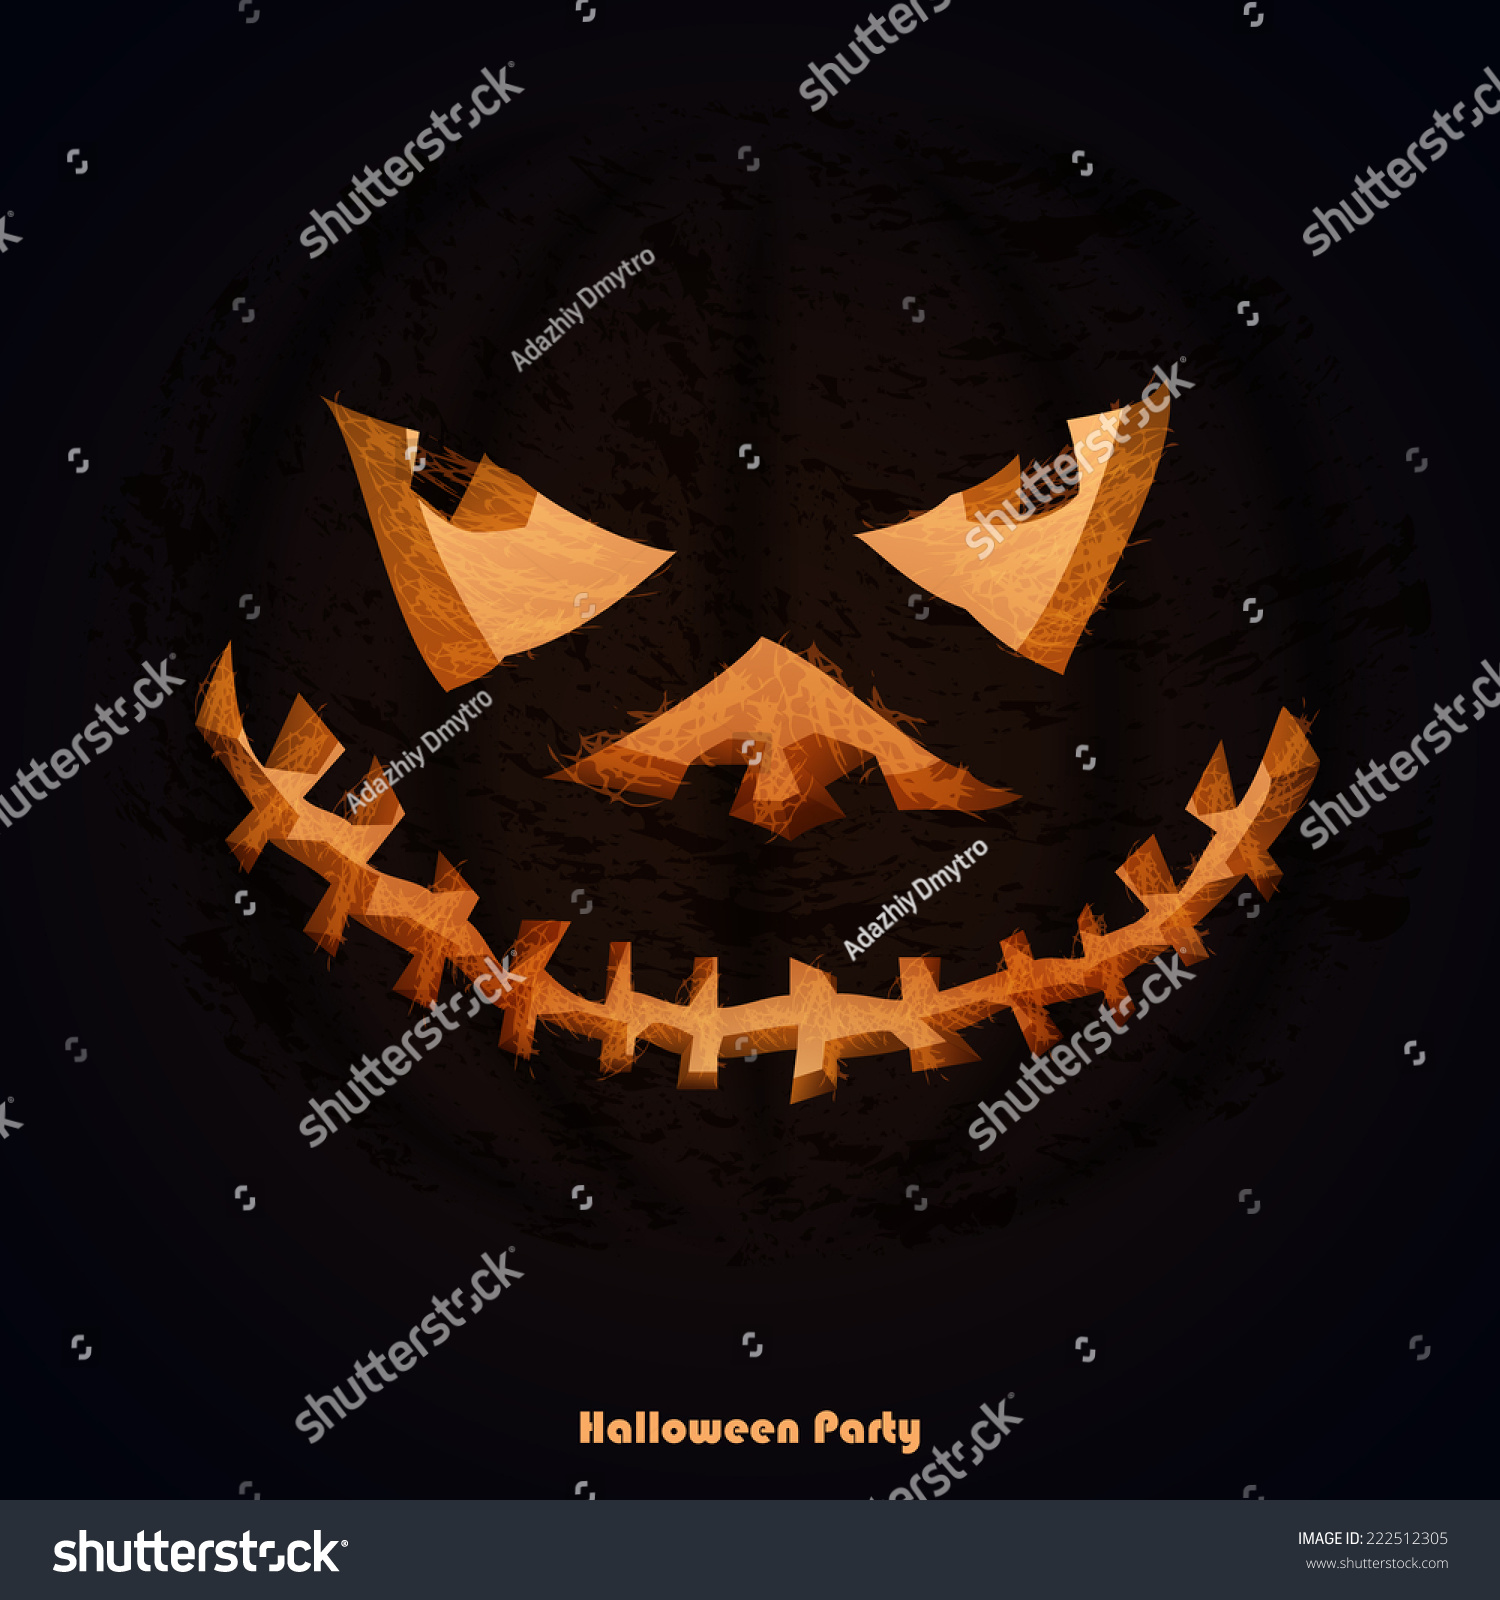 Scary Halloween Pumpkins Party Invitations Space Stock Vector ...